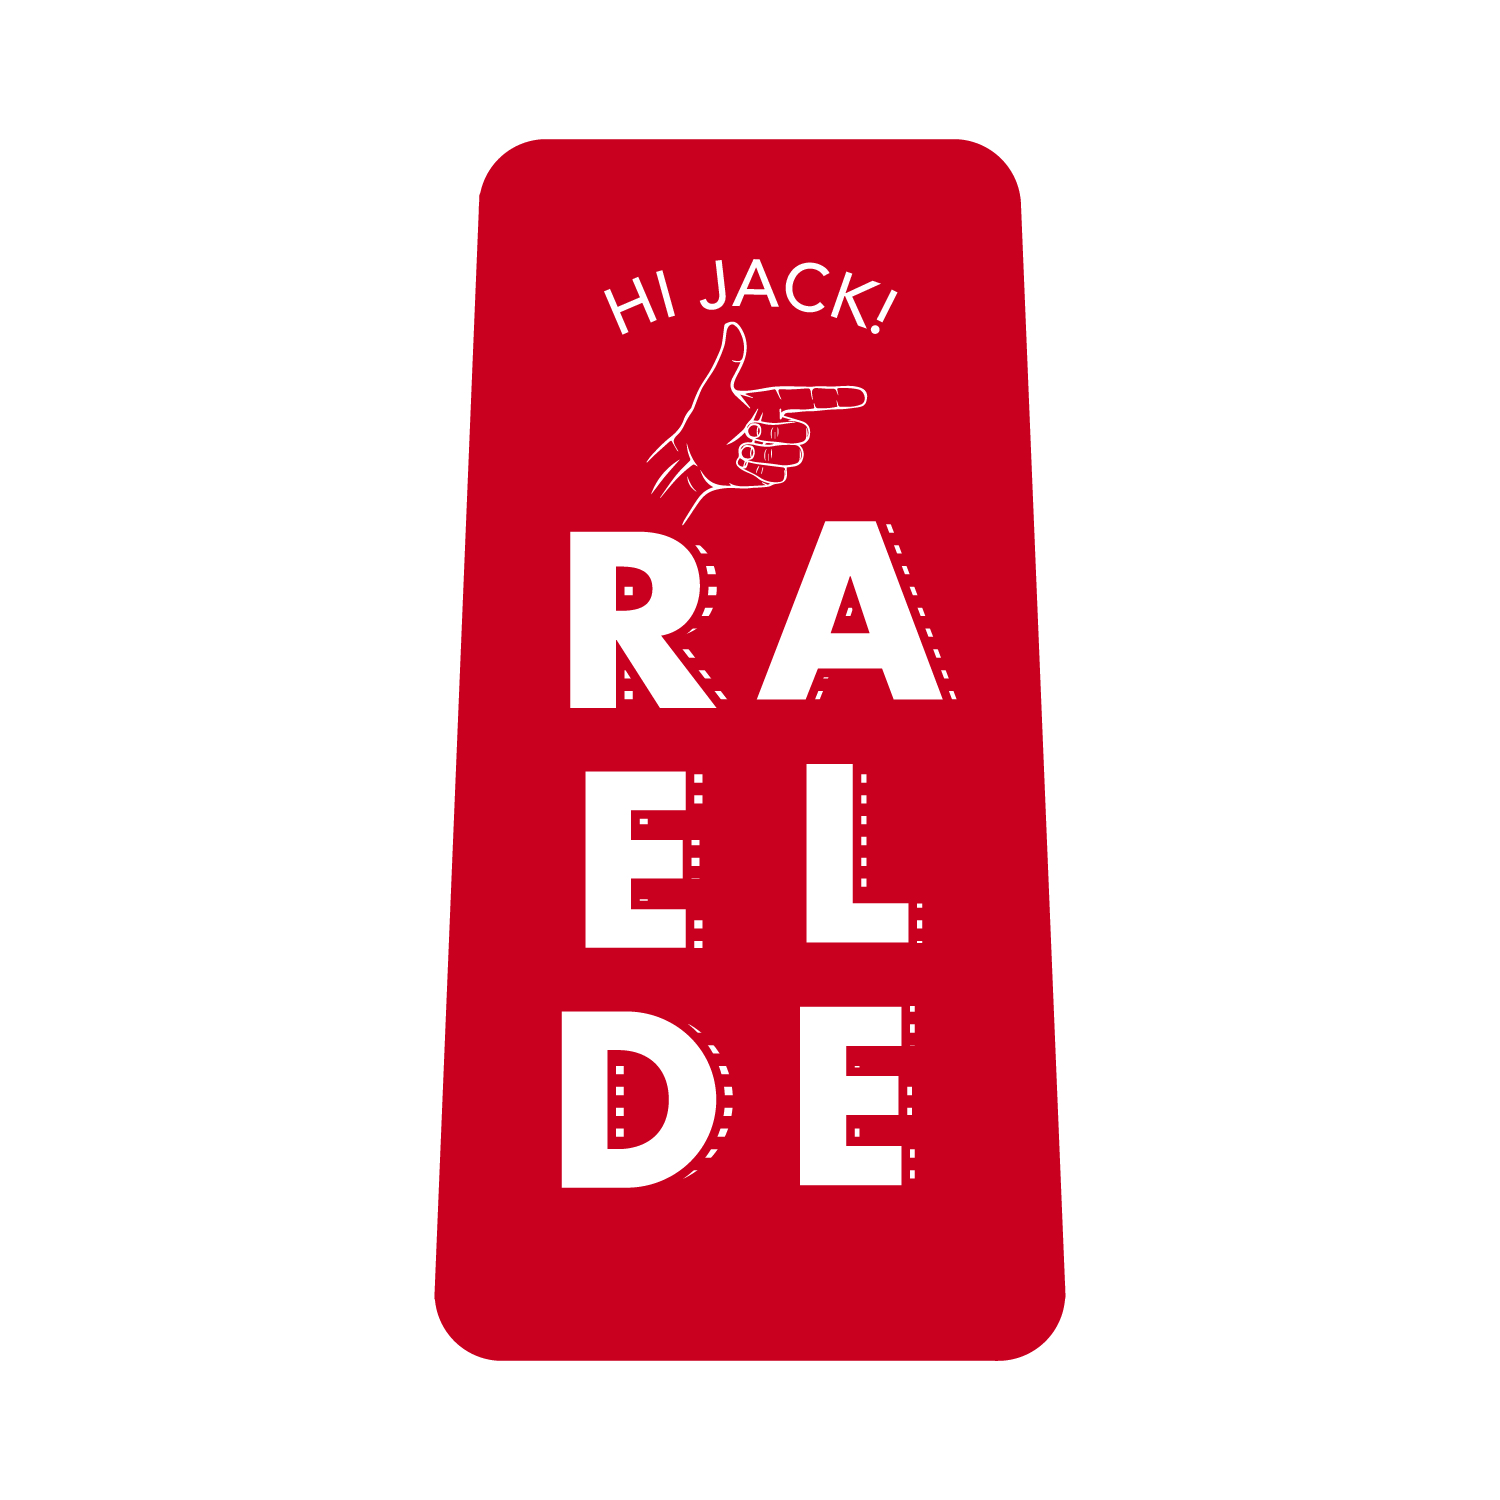 - HI JACK! RED ALE - 5.5% 33 IBU's; American Red Ale; Crystal and Black malts lend to a deep red hue and extremely smooth body while a dosing of Centennial hops provide floral and citrus notes with a small amount of bitterness to balance the beer.